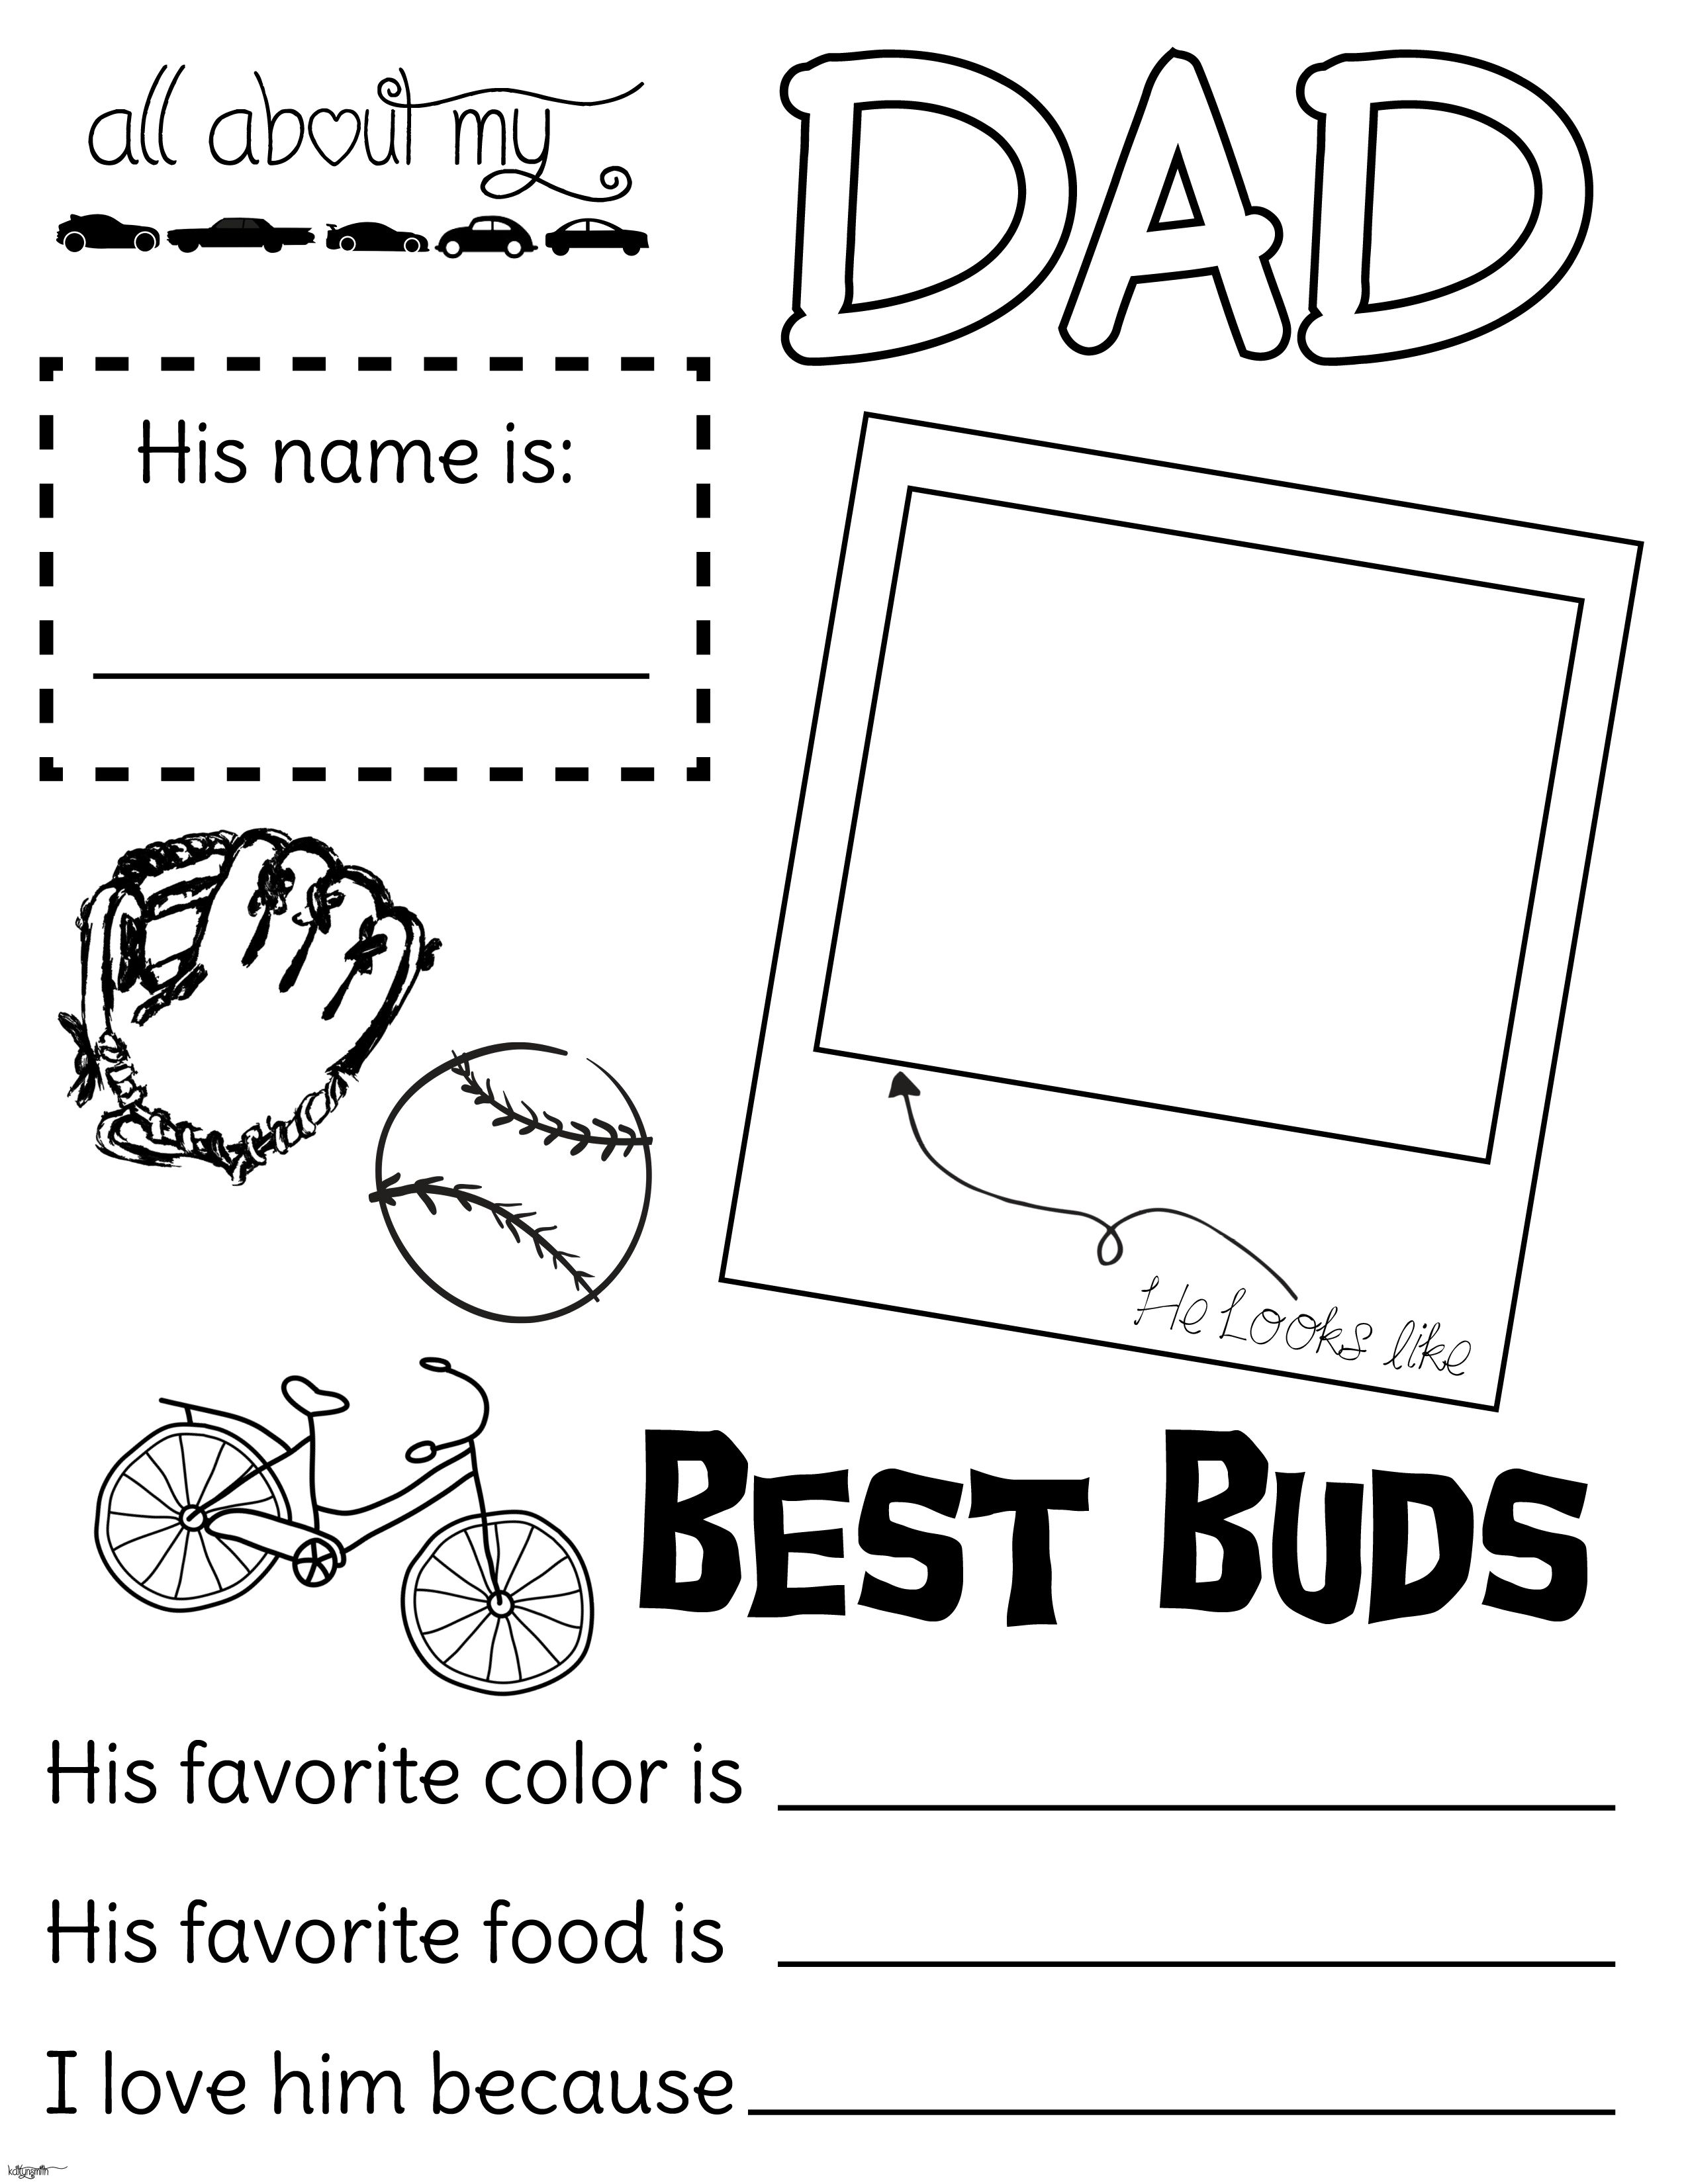 All About My Dad Fathers Day Handout Fillout Coloring Page Lds Church Sunbeams Fathers Day Coloring Page Sunday School Coloring Pages Coloring Pages